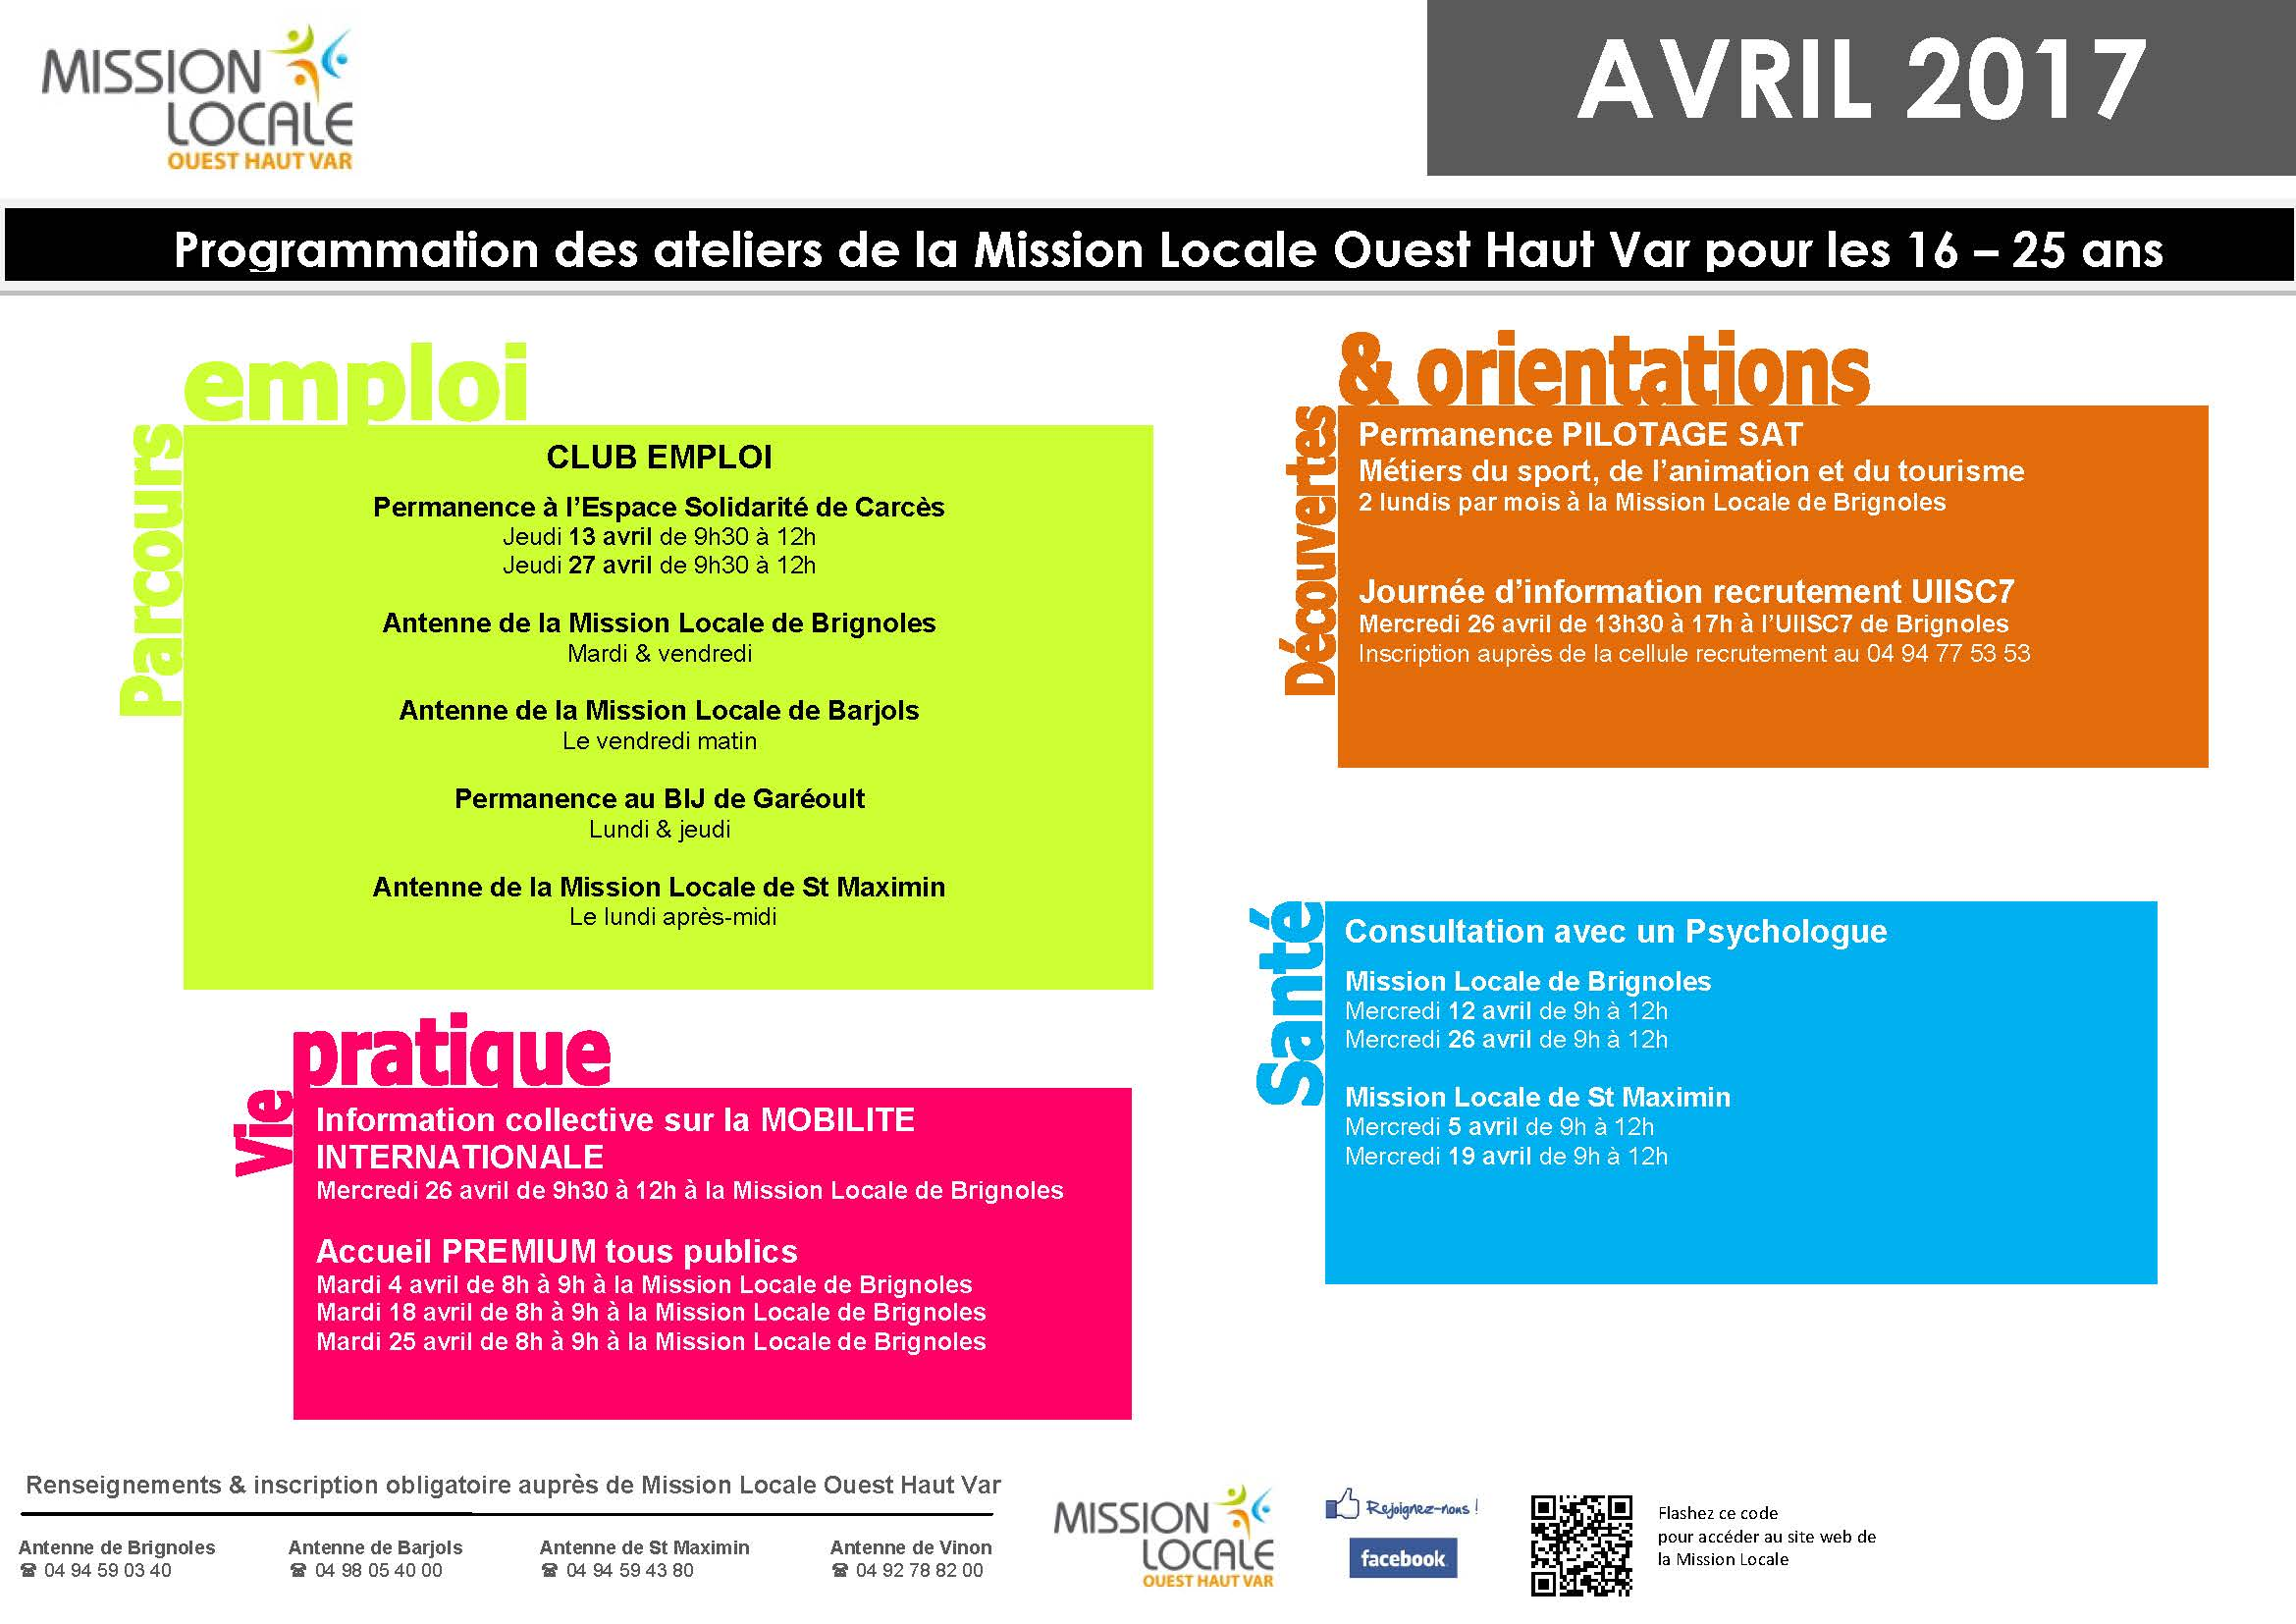 Affiche ATELIERS MISSION LOCALE - Avril 2017